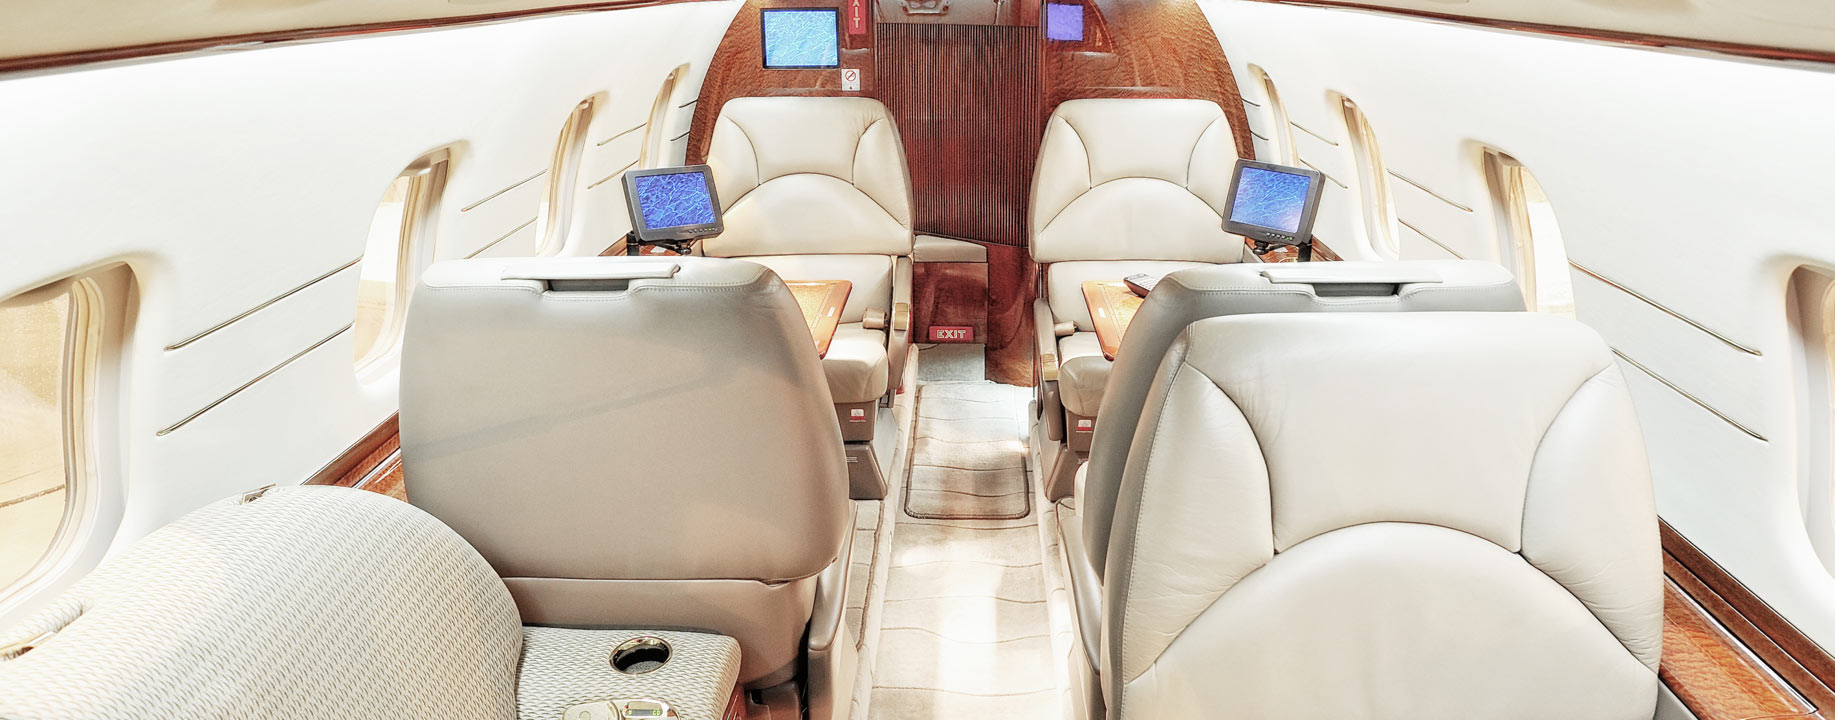 Luxury interior of aircraft